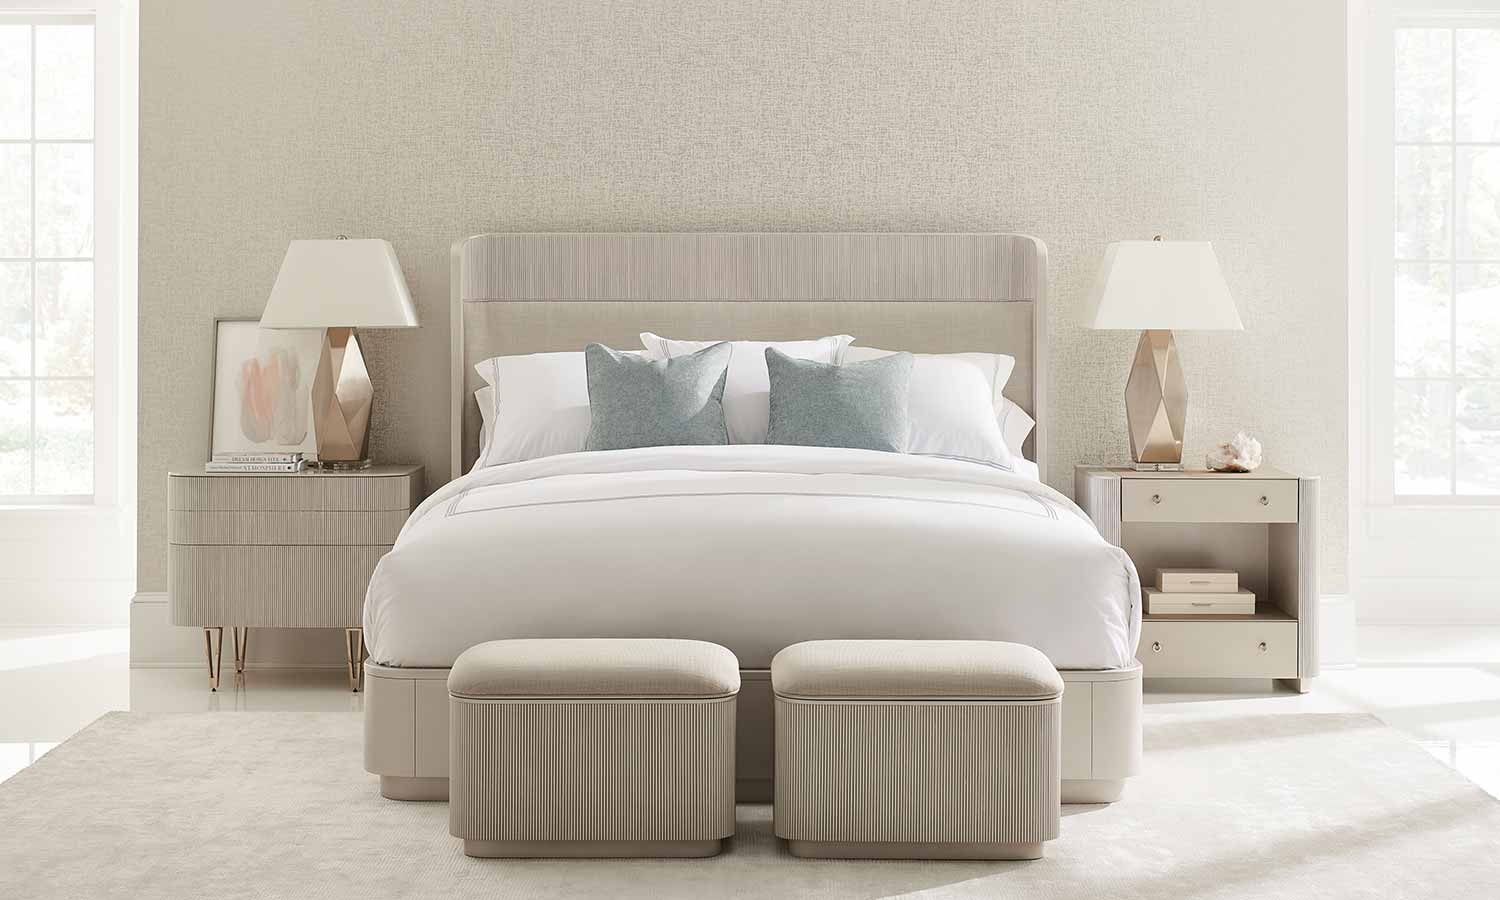 Fall in Love Bed | Bedroom | Contemporary Modern Luxury Exclusive Elegant Designer Handcrafted Furniture